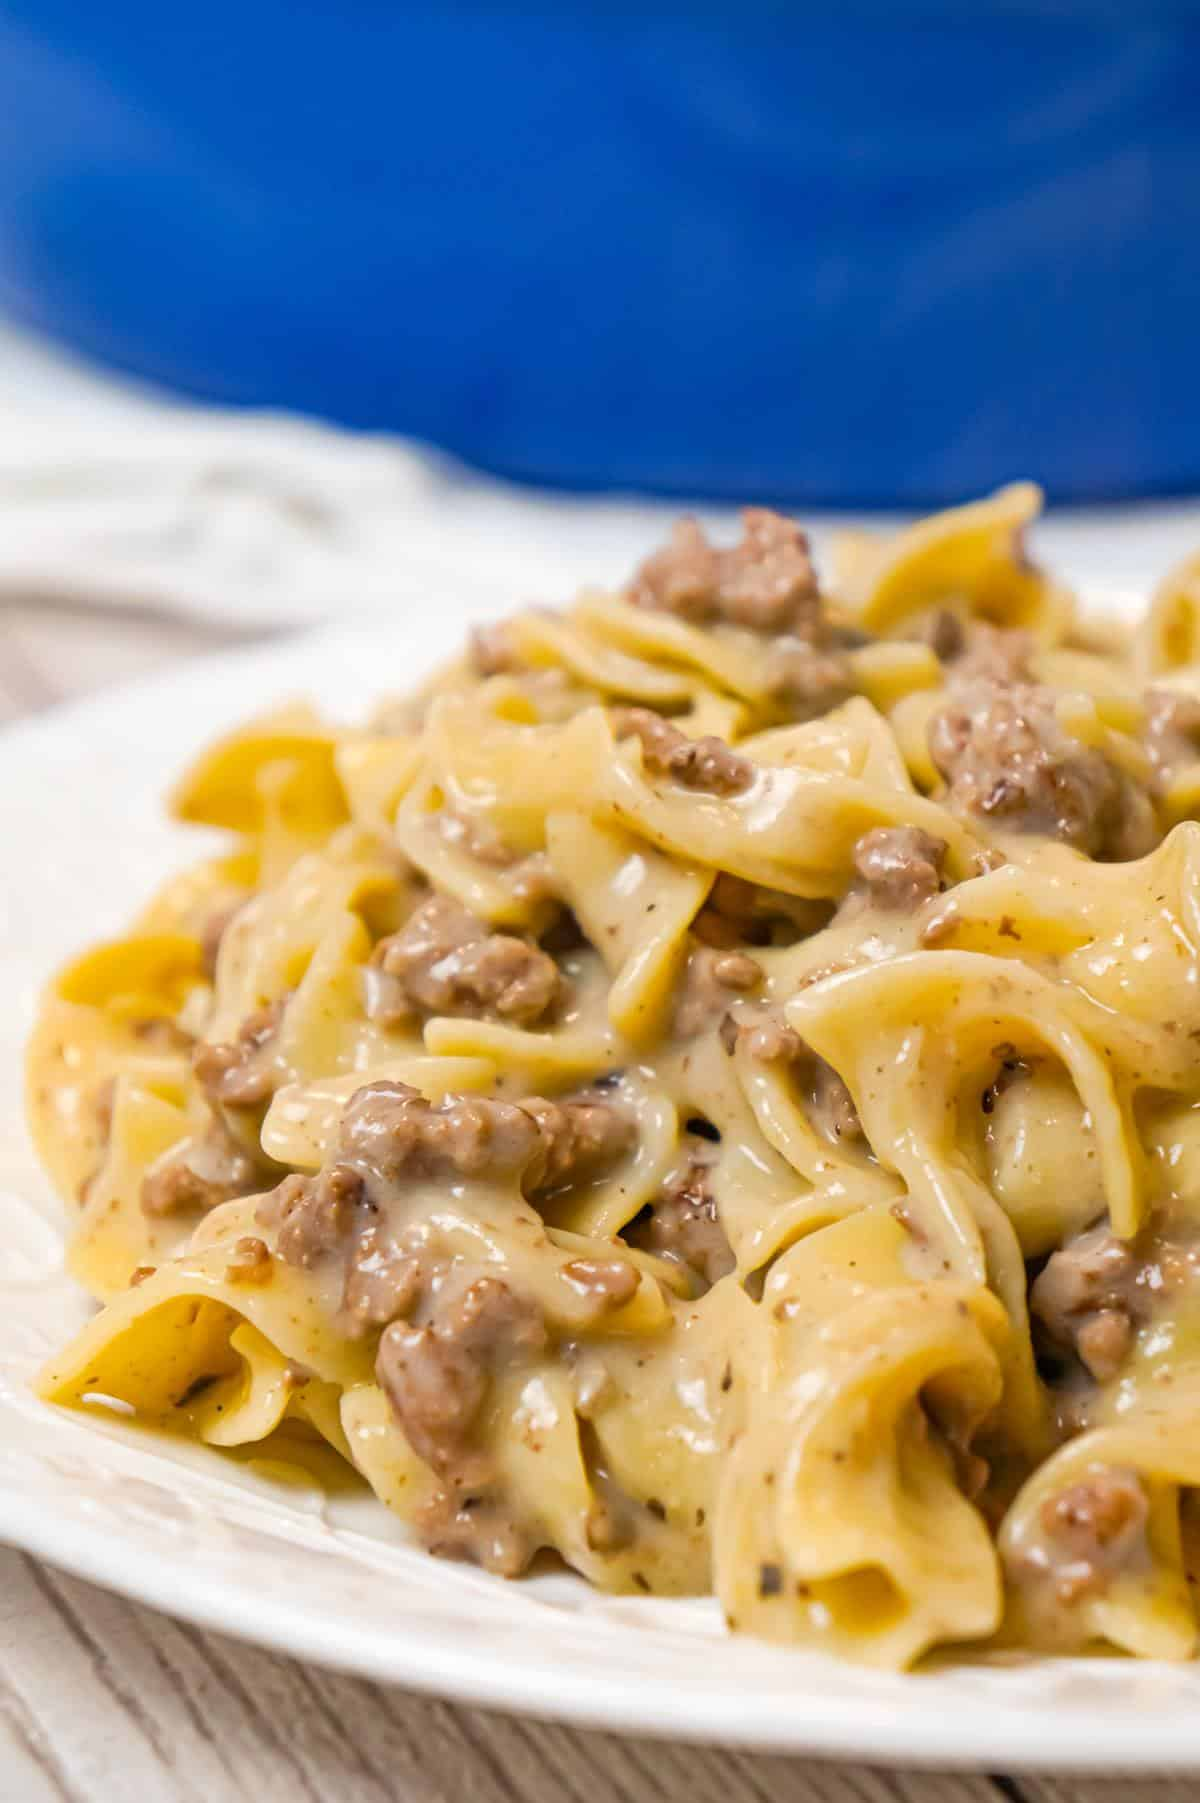 Homemade Hamburger Helper is an easy weeknight dinner recipe made with ground beef, egg noodles and condensed cream of mushroom soup.